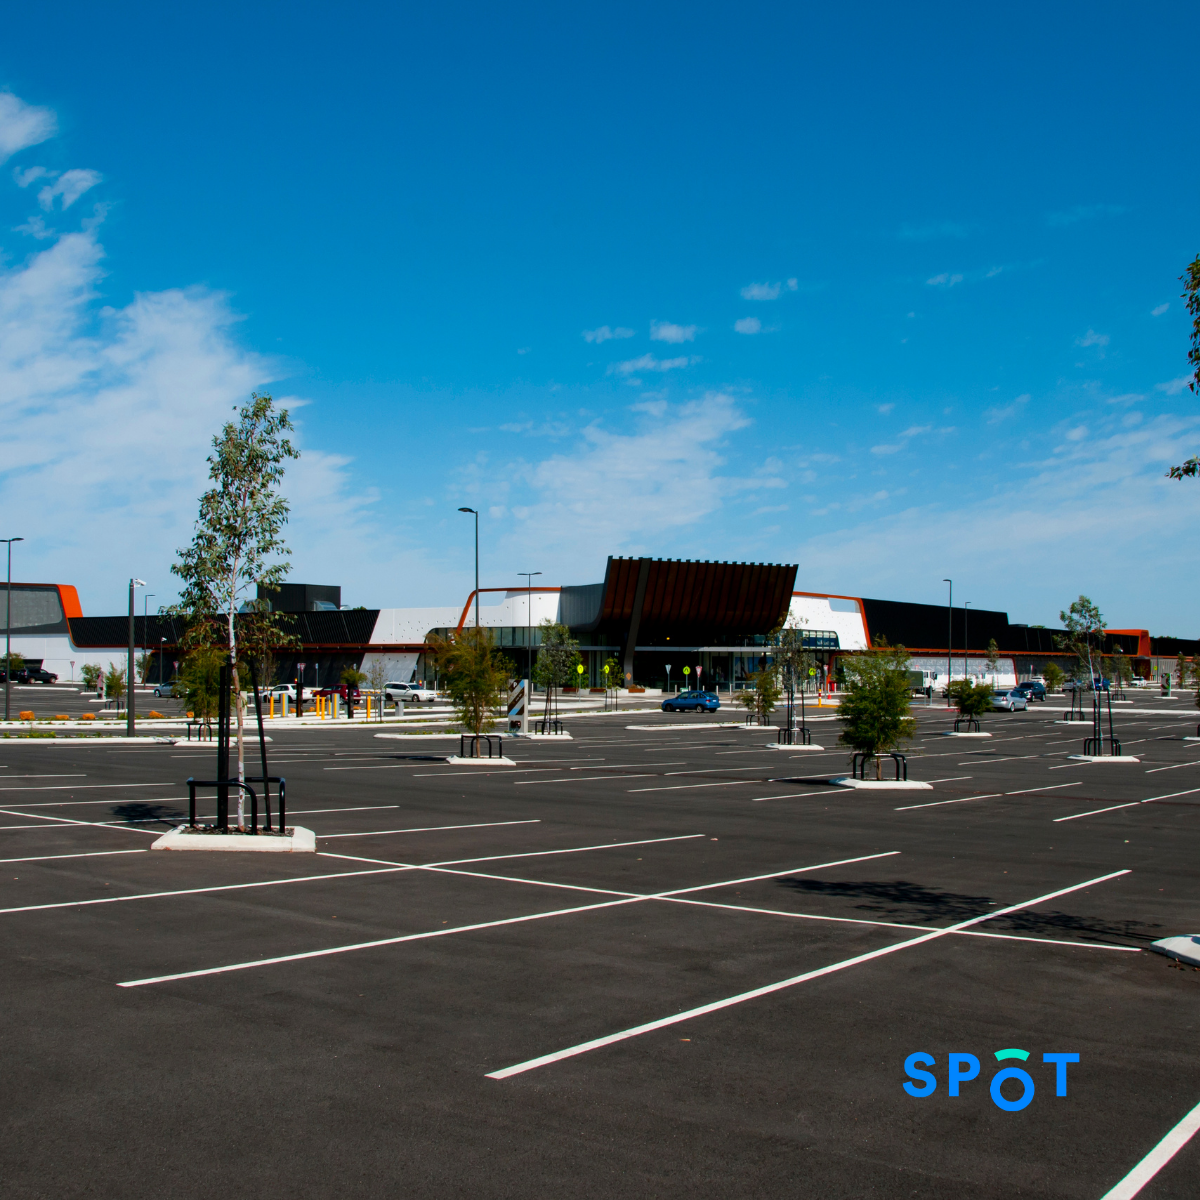 An empty parking lot due to the effects of COVID-19 in the parking industry